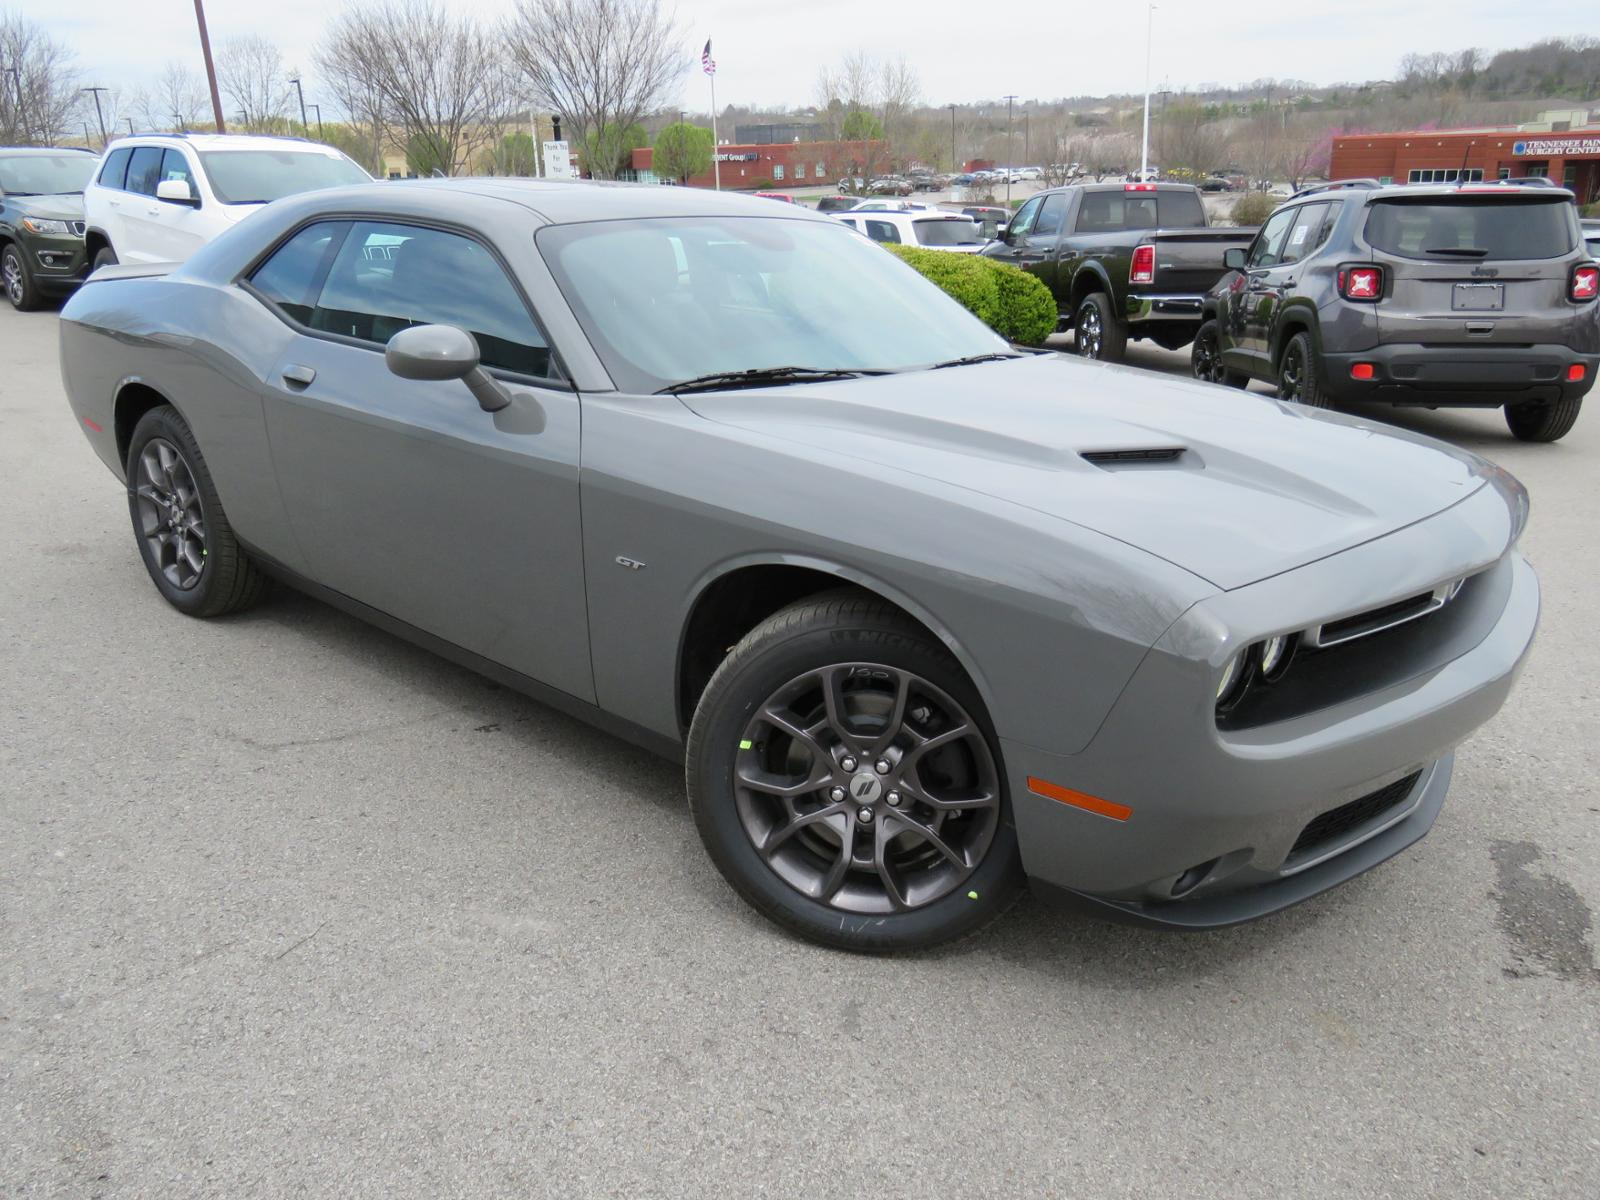 west shaker rwd dodge hemi pack challenger inventory scat in new coupe